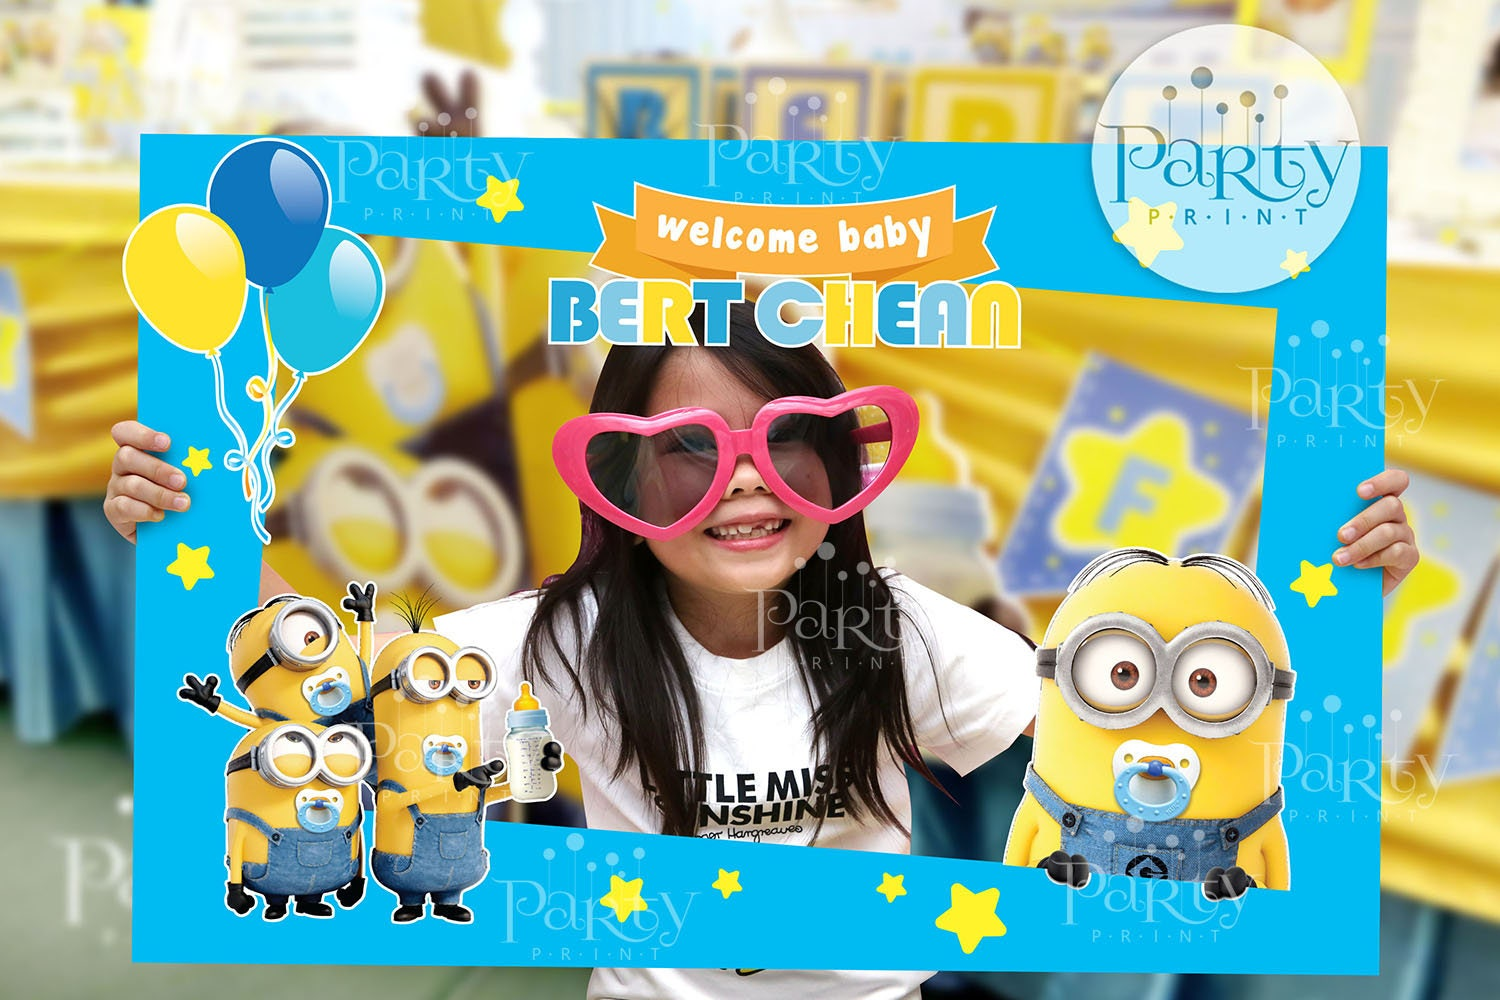 Print it yourself digital copy minions inspired baby shower diy print it yourself digital copy minions inspired baby shower diy photo frame solutioingenieria